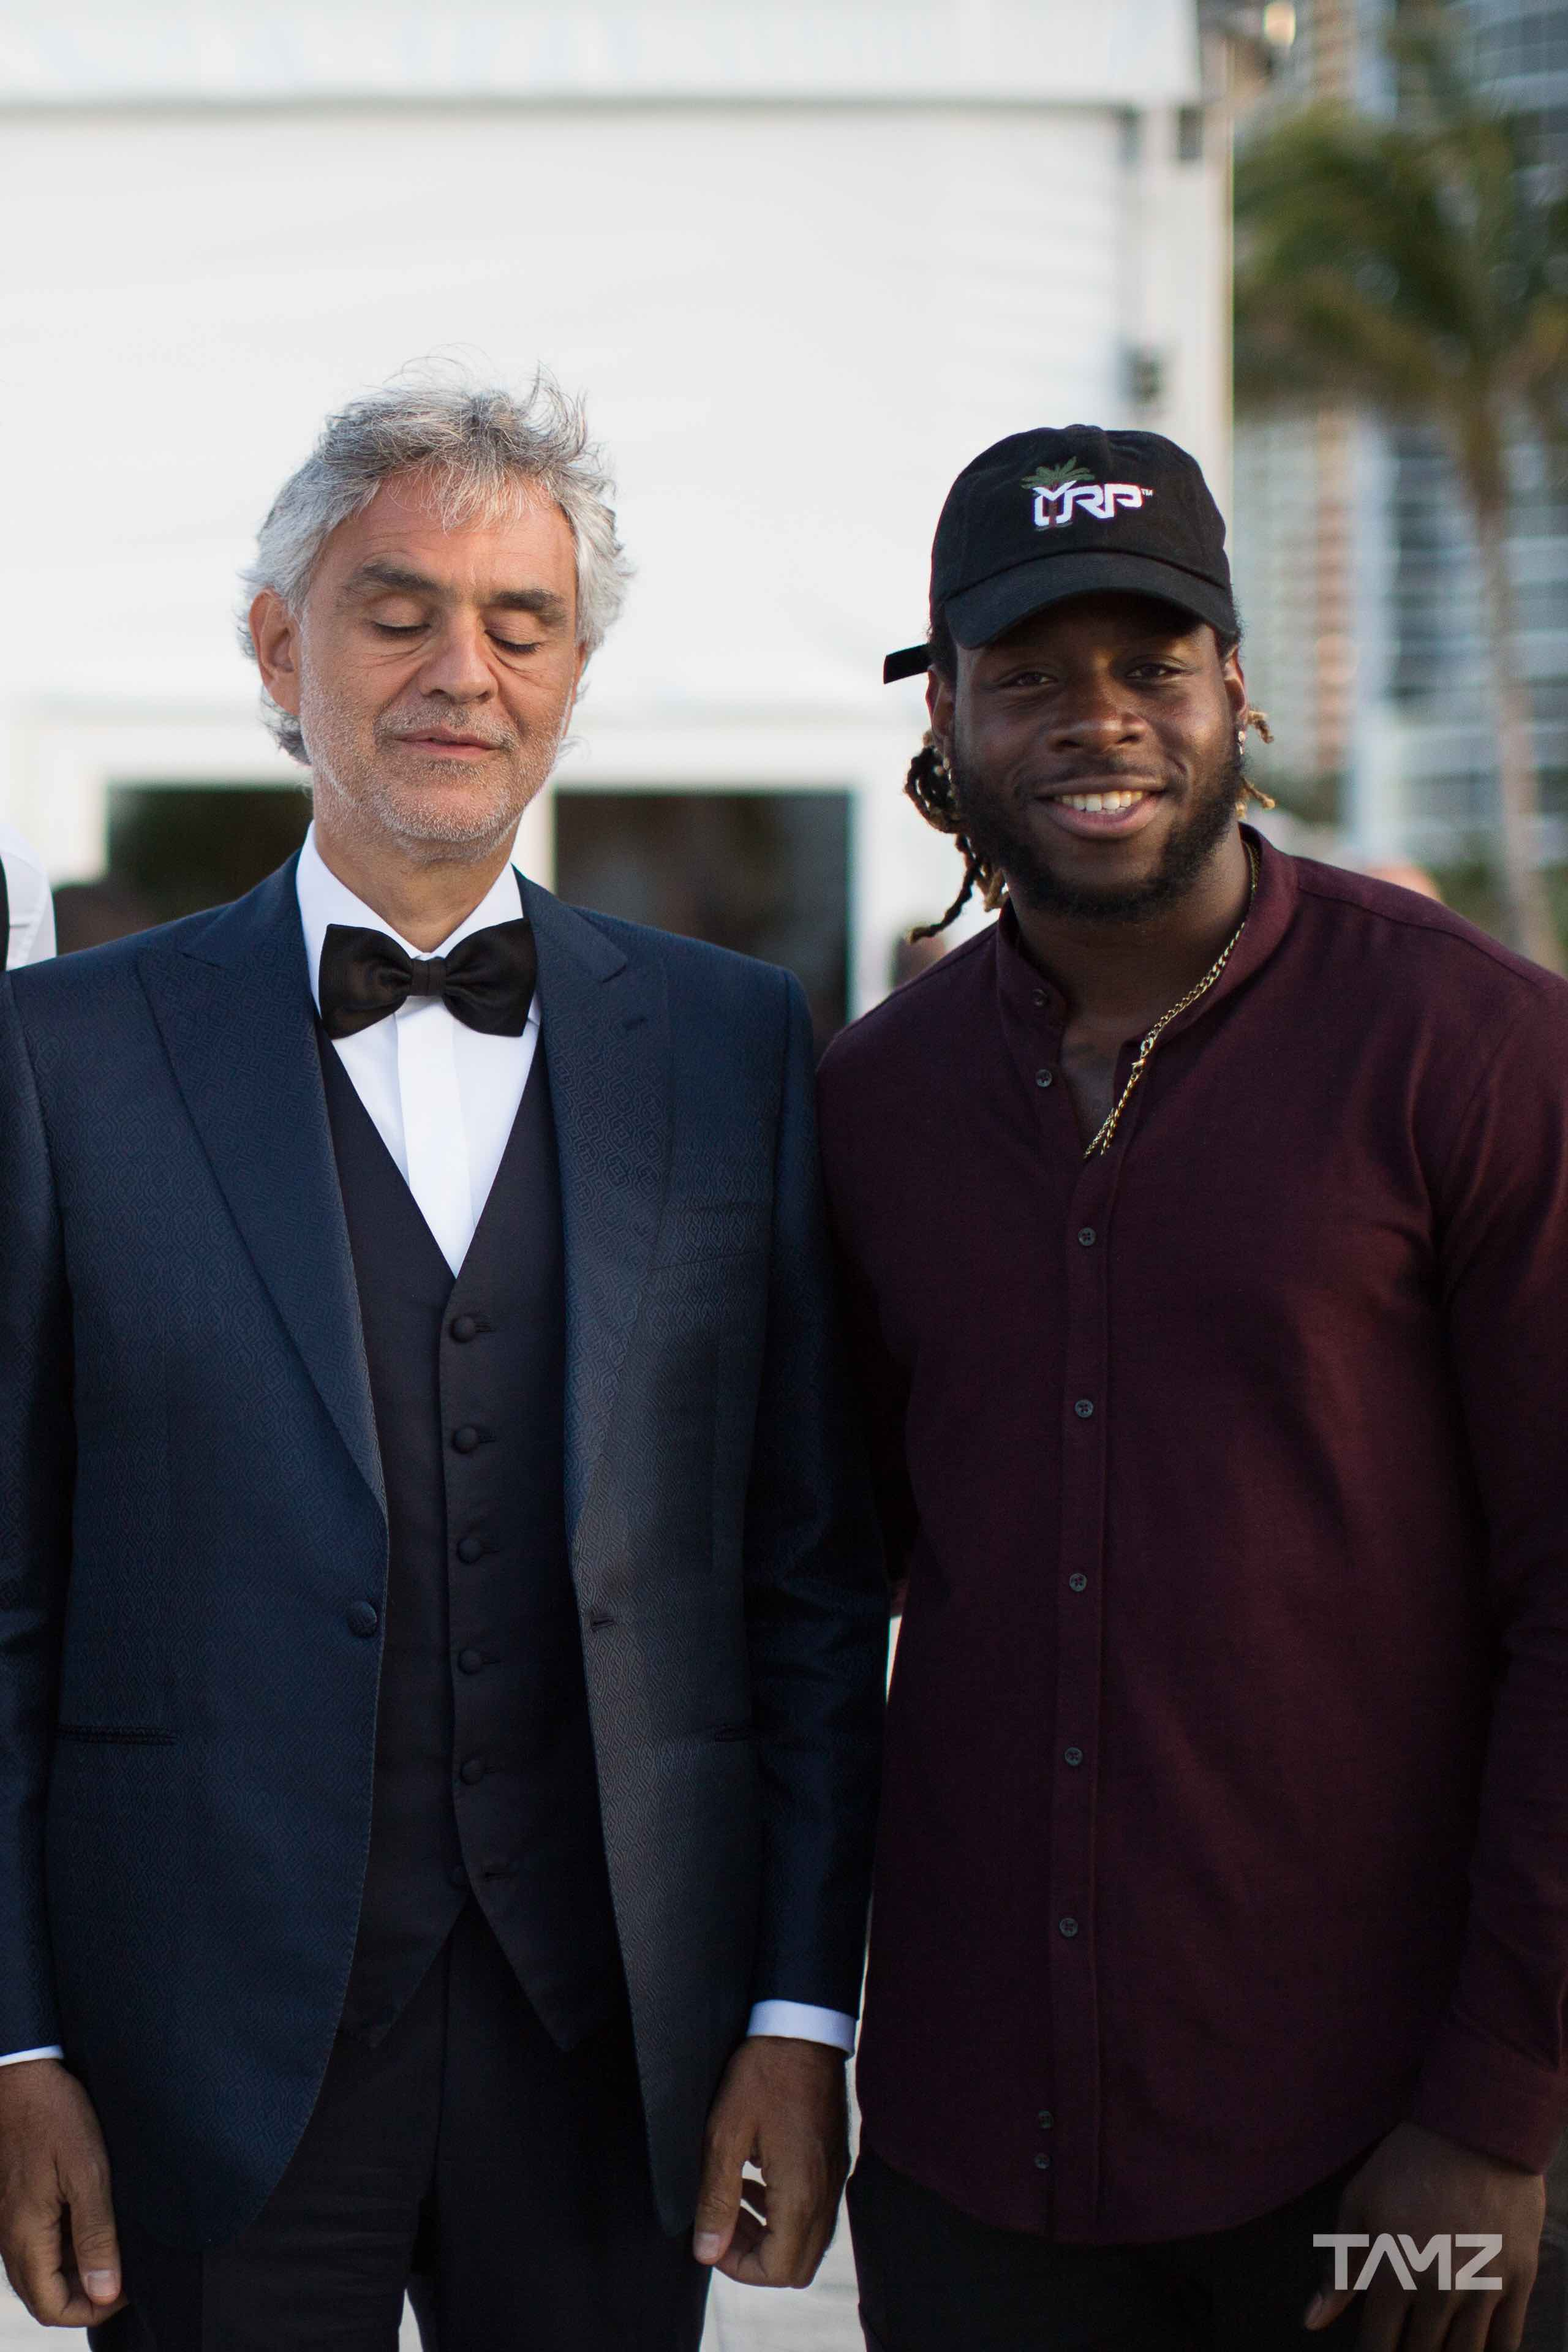 Inside Andrea Bocelli's Private Benefit Concert at